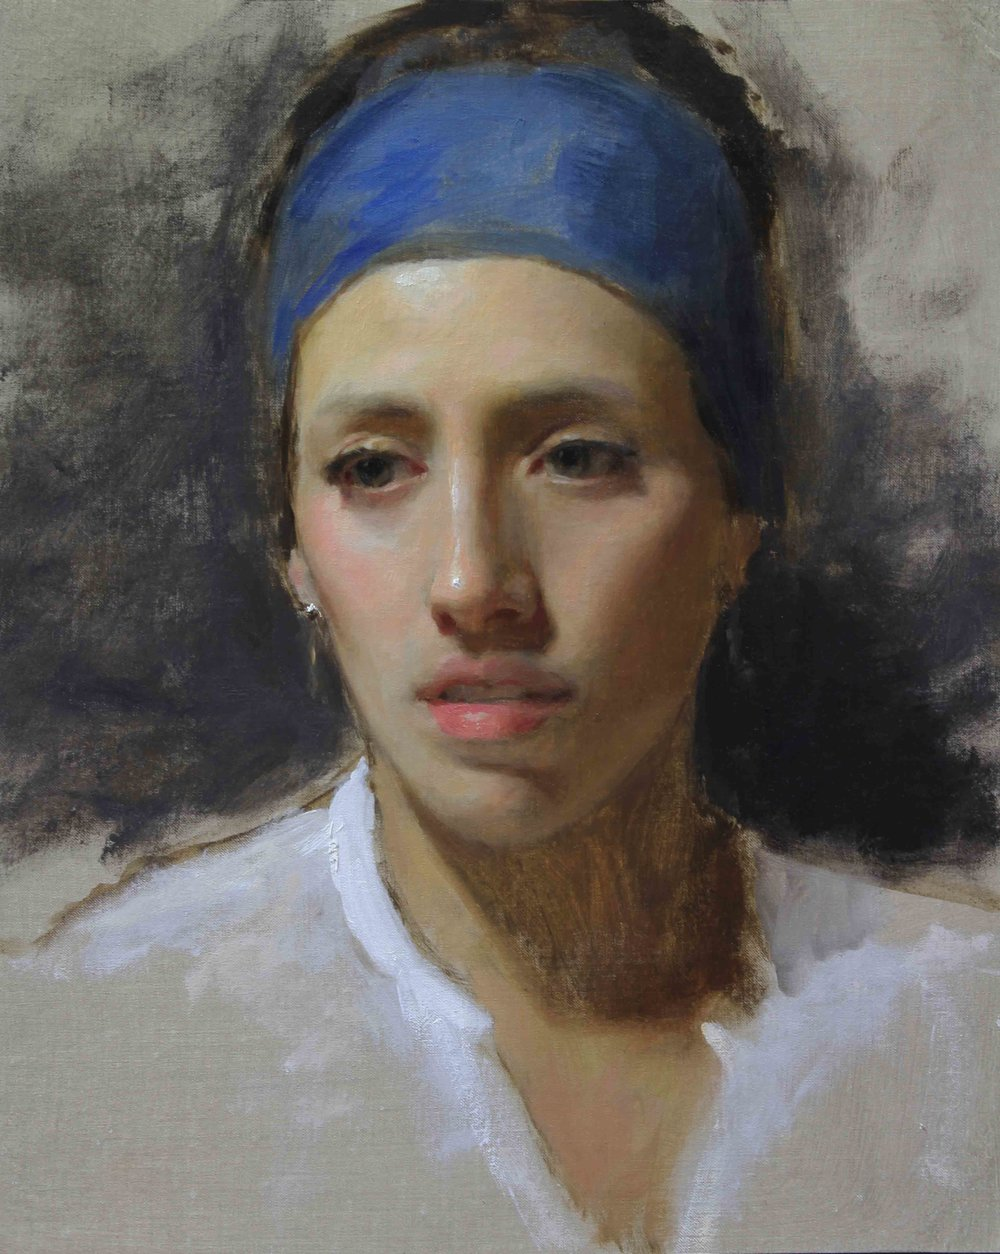 *SOLD OUT* Email for Waitlist - July 14-16 2017 - Bucks County, PA - 3-Day Portrait Painting Workshop